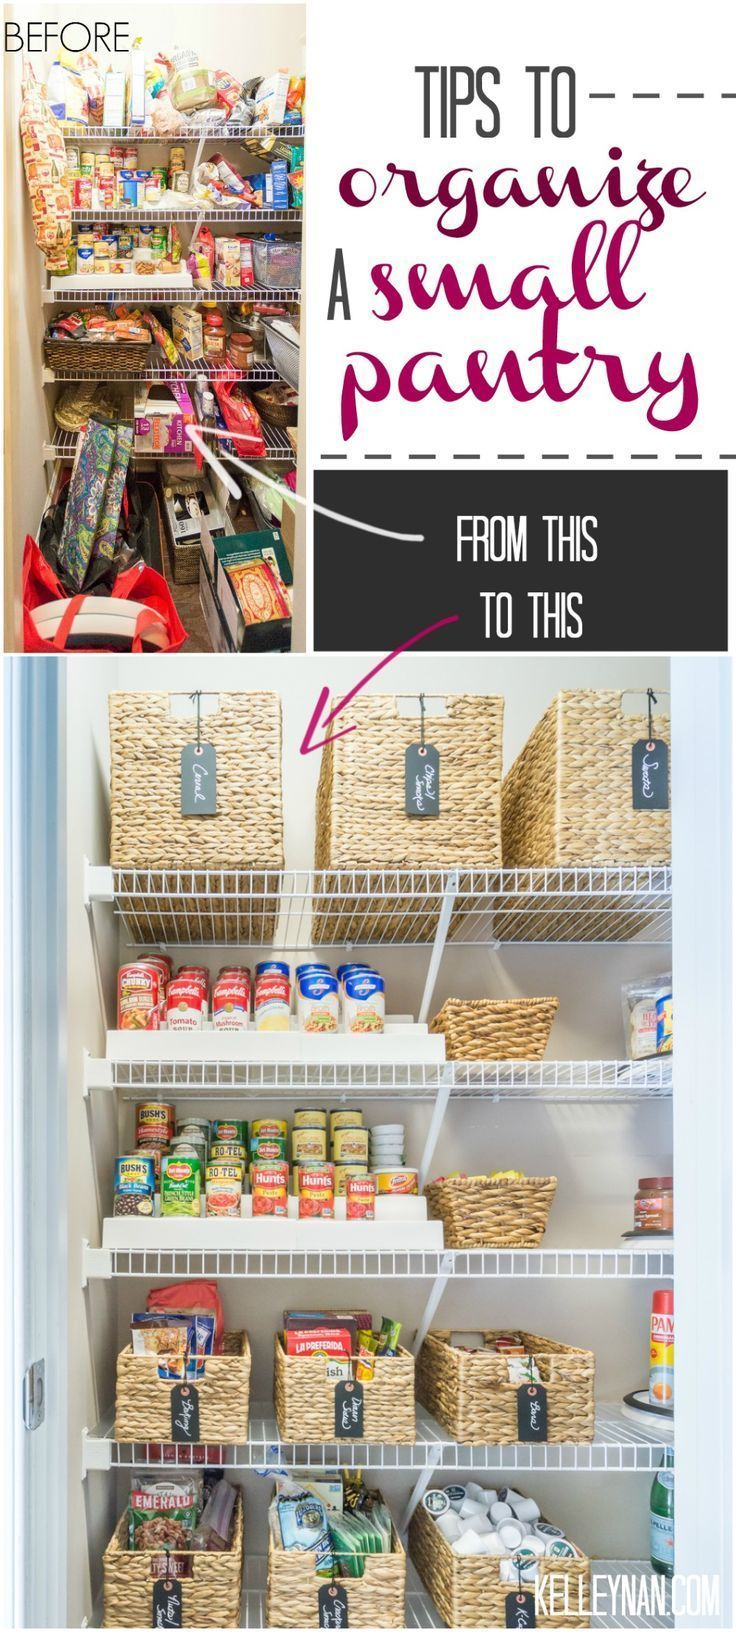 Nine Ideas to Organize a Small Pantry with Wire Shelving #pantry #kitchenorganization #pantryorganization #organizedpantry #organizationideas #organizedkitchen #baskets #pantryshelving